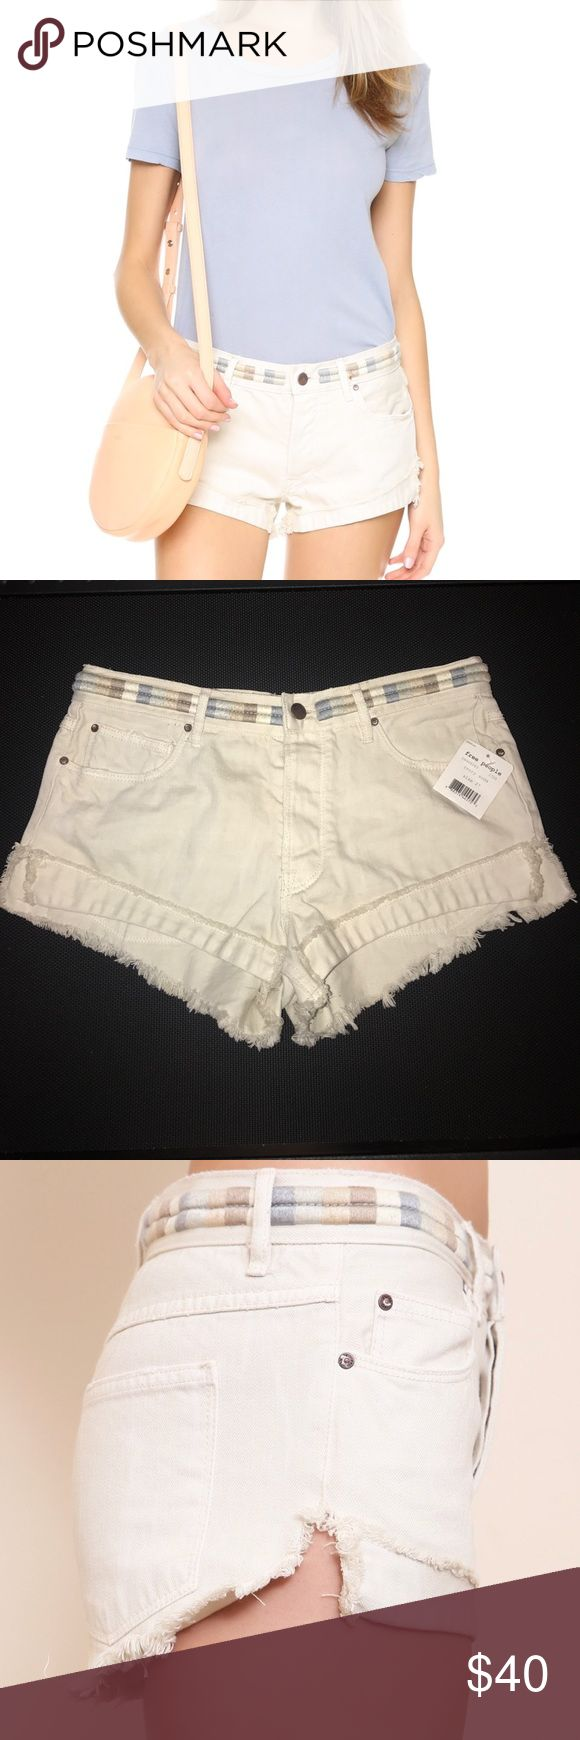 """NEW LISTING - FREE PEOPLE EMBROIDERED DENIM SHORTS FREE PEOPLE IVORY COTTON DENIM SHORTS    Waist Across: 16 1/2"""" - Inseam: 2"""" - Rise: 10"""" - Hips Across: 18"""". Flat Front - Patch Pockets - 100% Cotton - Denim Smoke free household Free People Shorts Jean Shorts"""